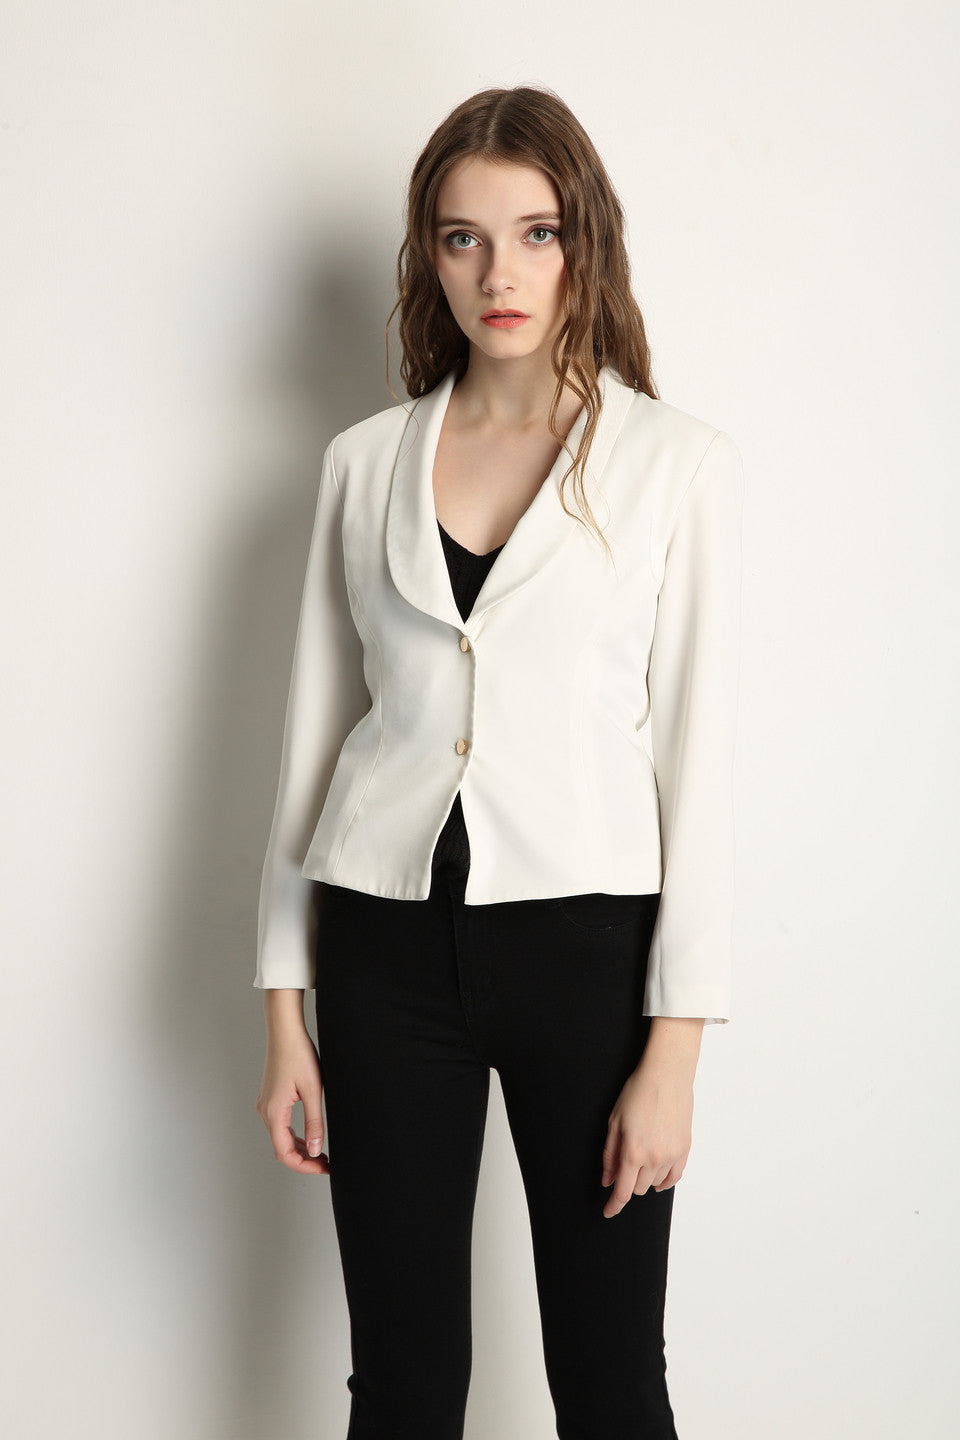 White Blazer With Gold Buttons - GlanceZ   - 2